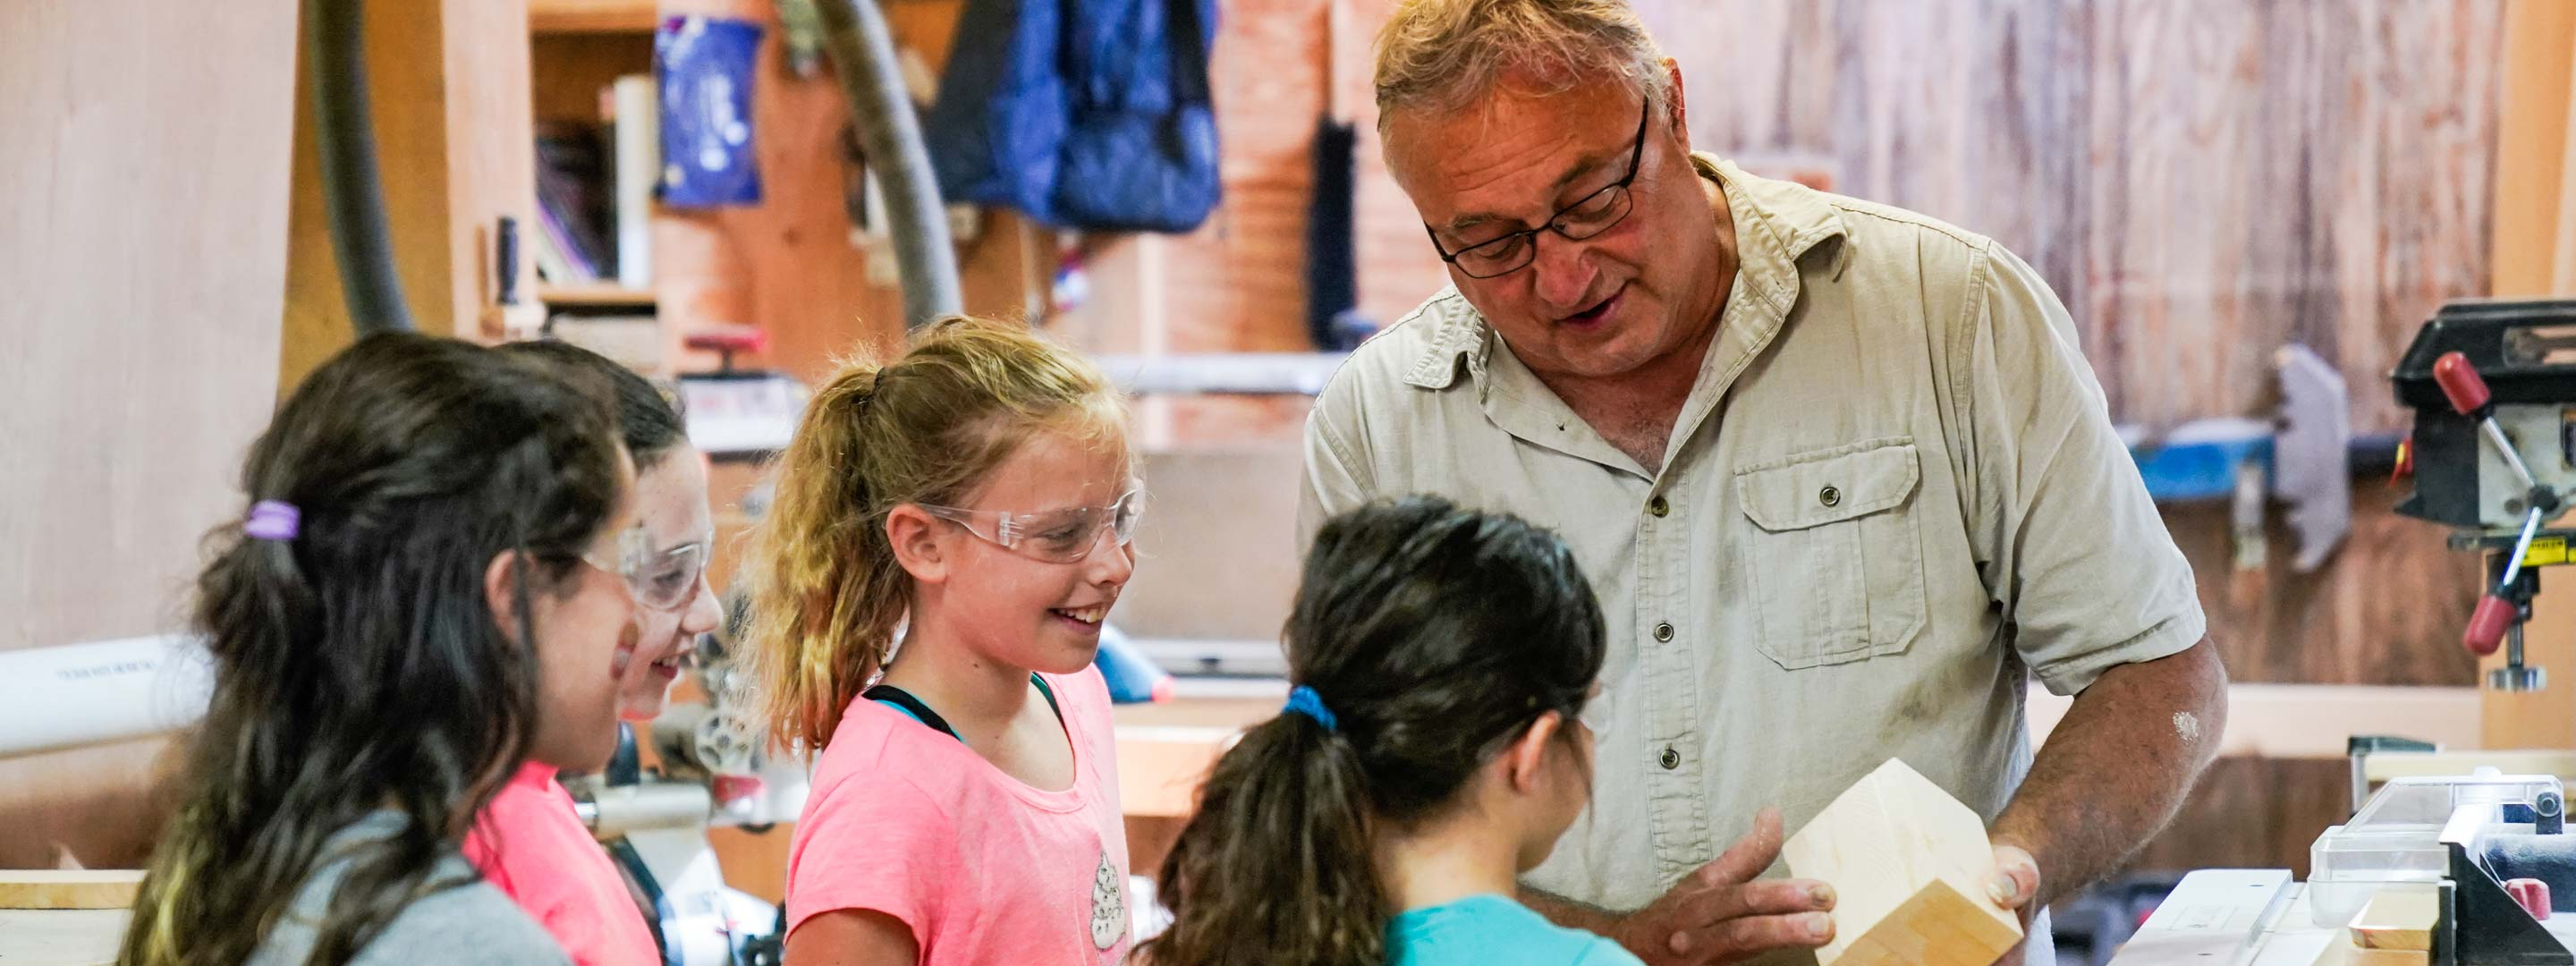 a man showing young girls a piece of wood